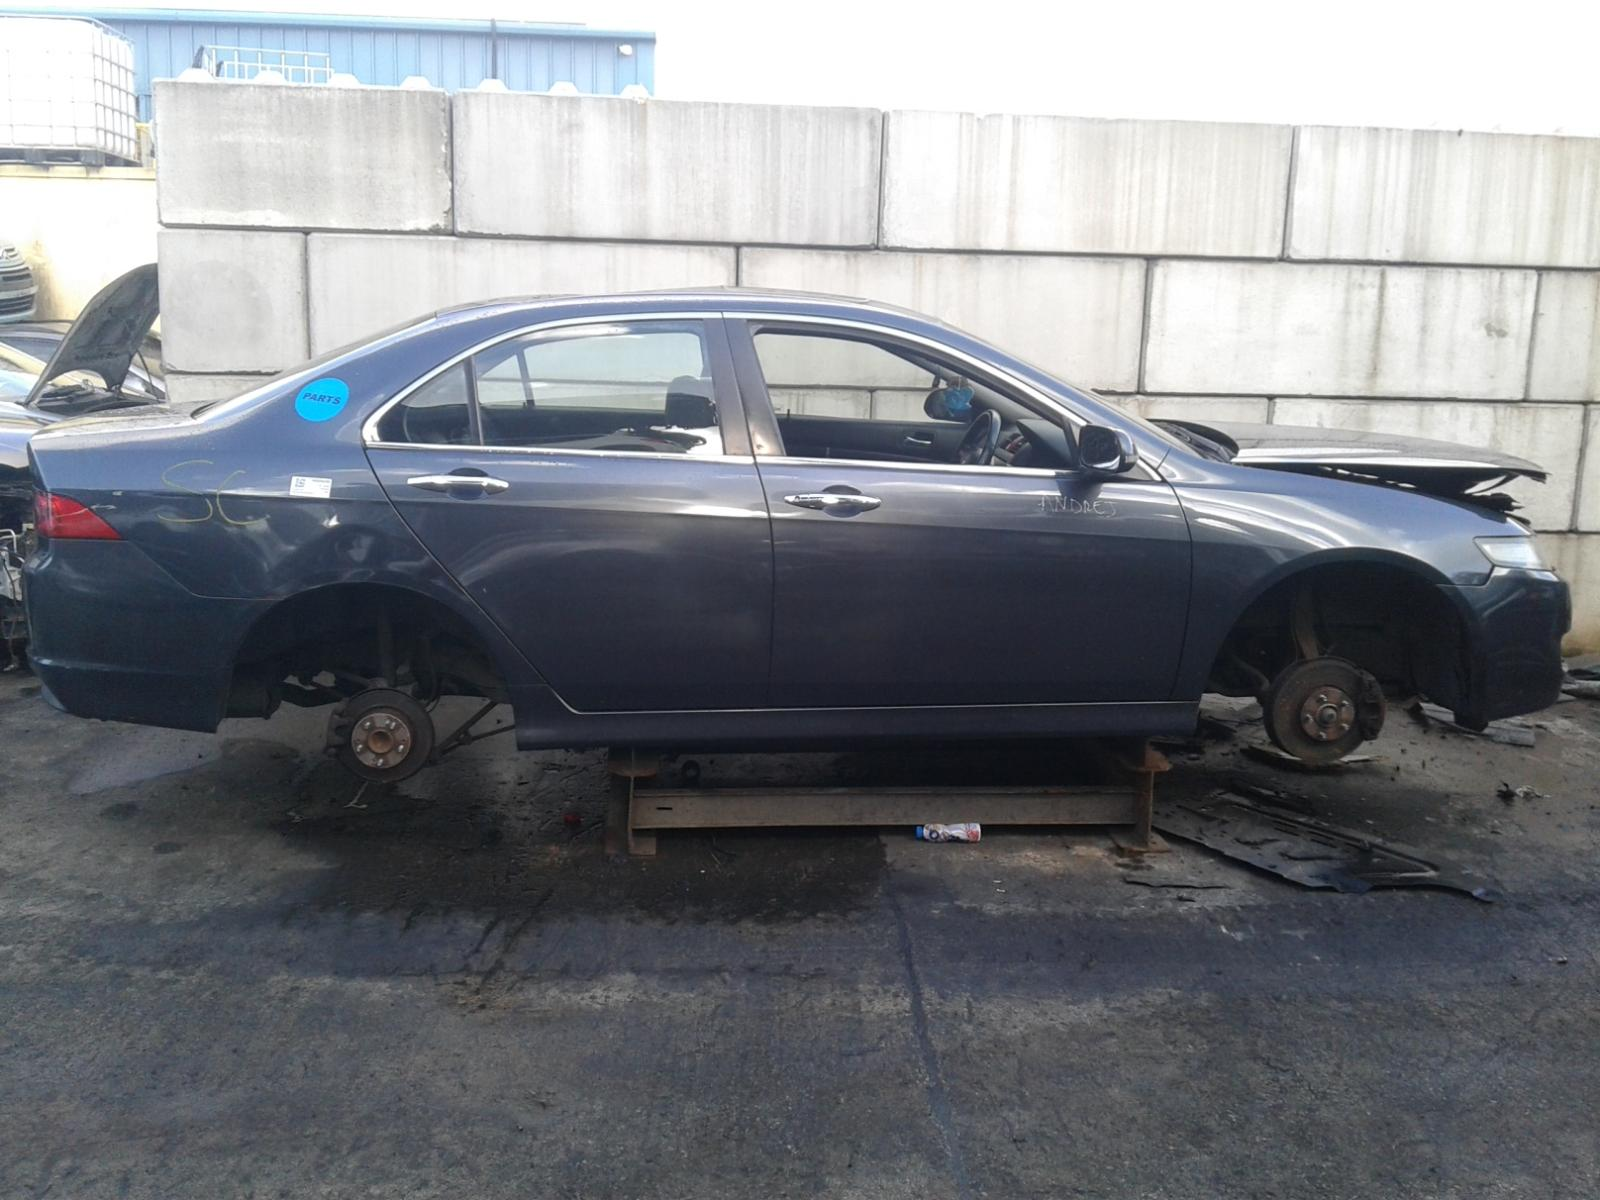 Image for a HONDA ACCORD 2007 Unknown Unknown